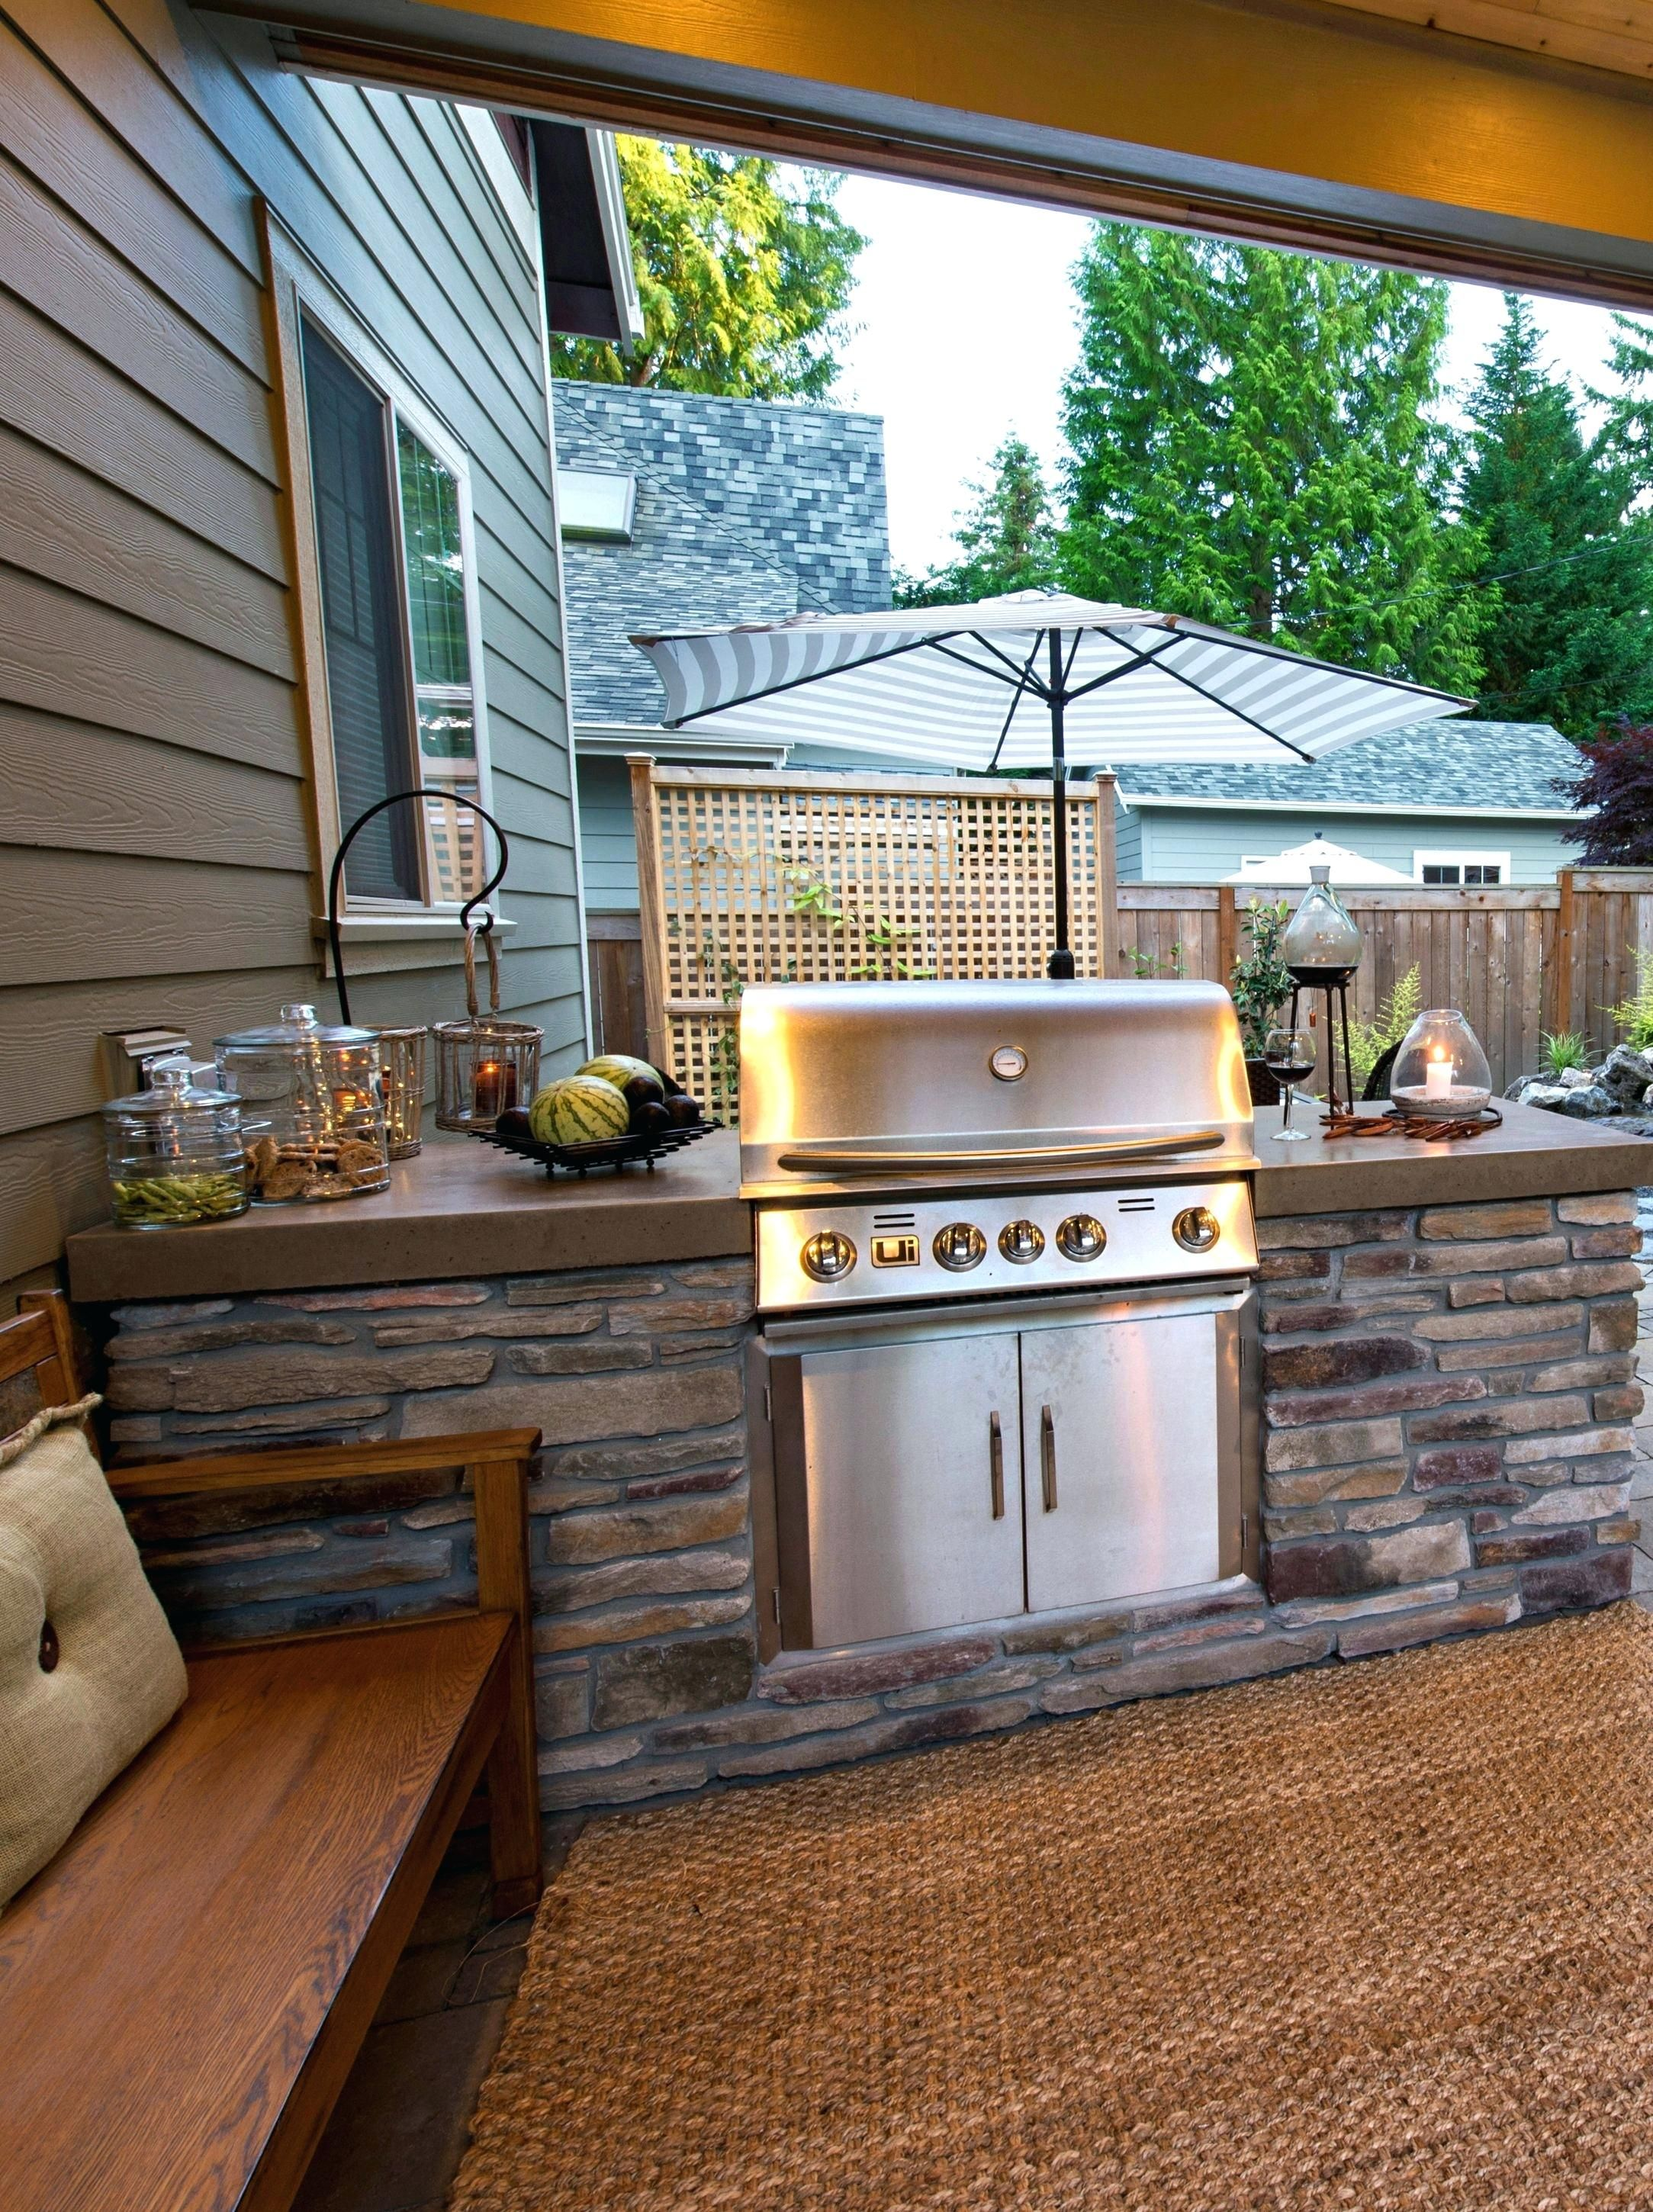 Outdoor Kitchen Ideas On A Budget Affordable Small And Diy Outdoor Kitchen Ideas Small Outdoor Kitchens Backyard Kitchen Diy Outdoor Kitchen